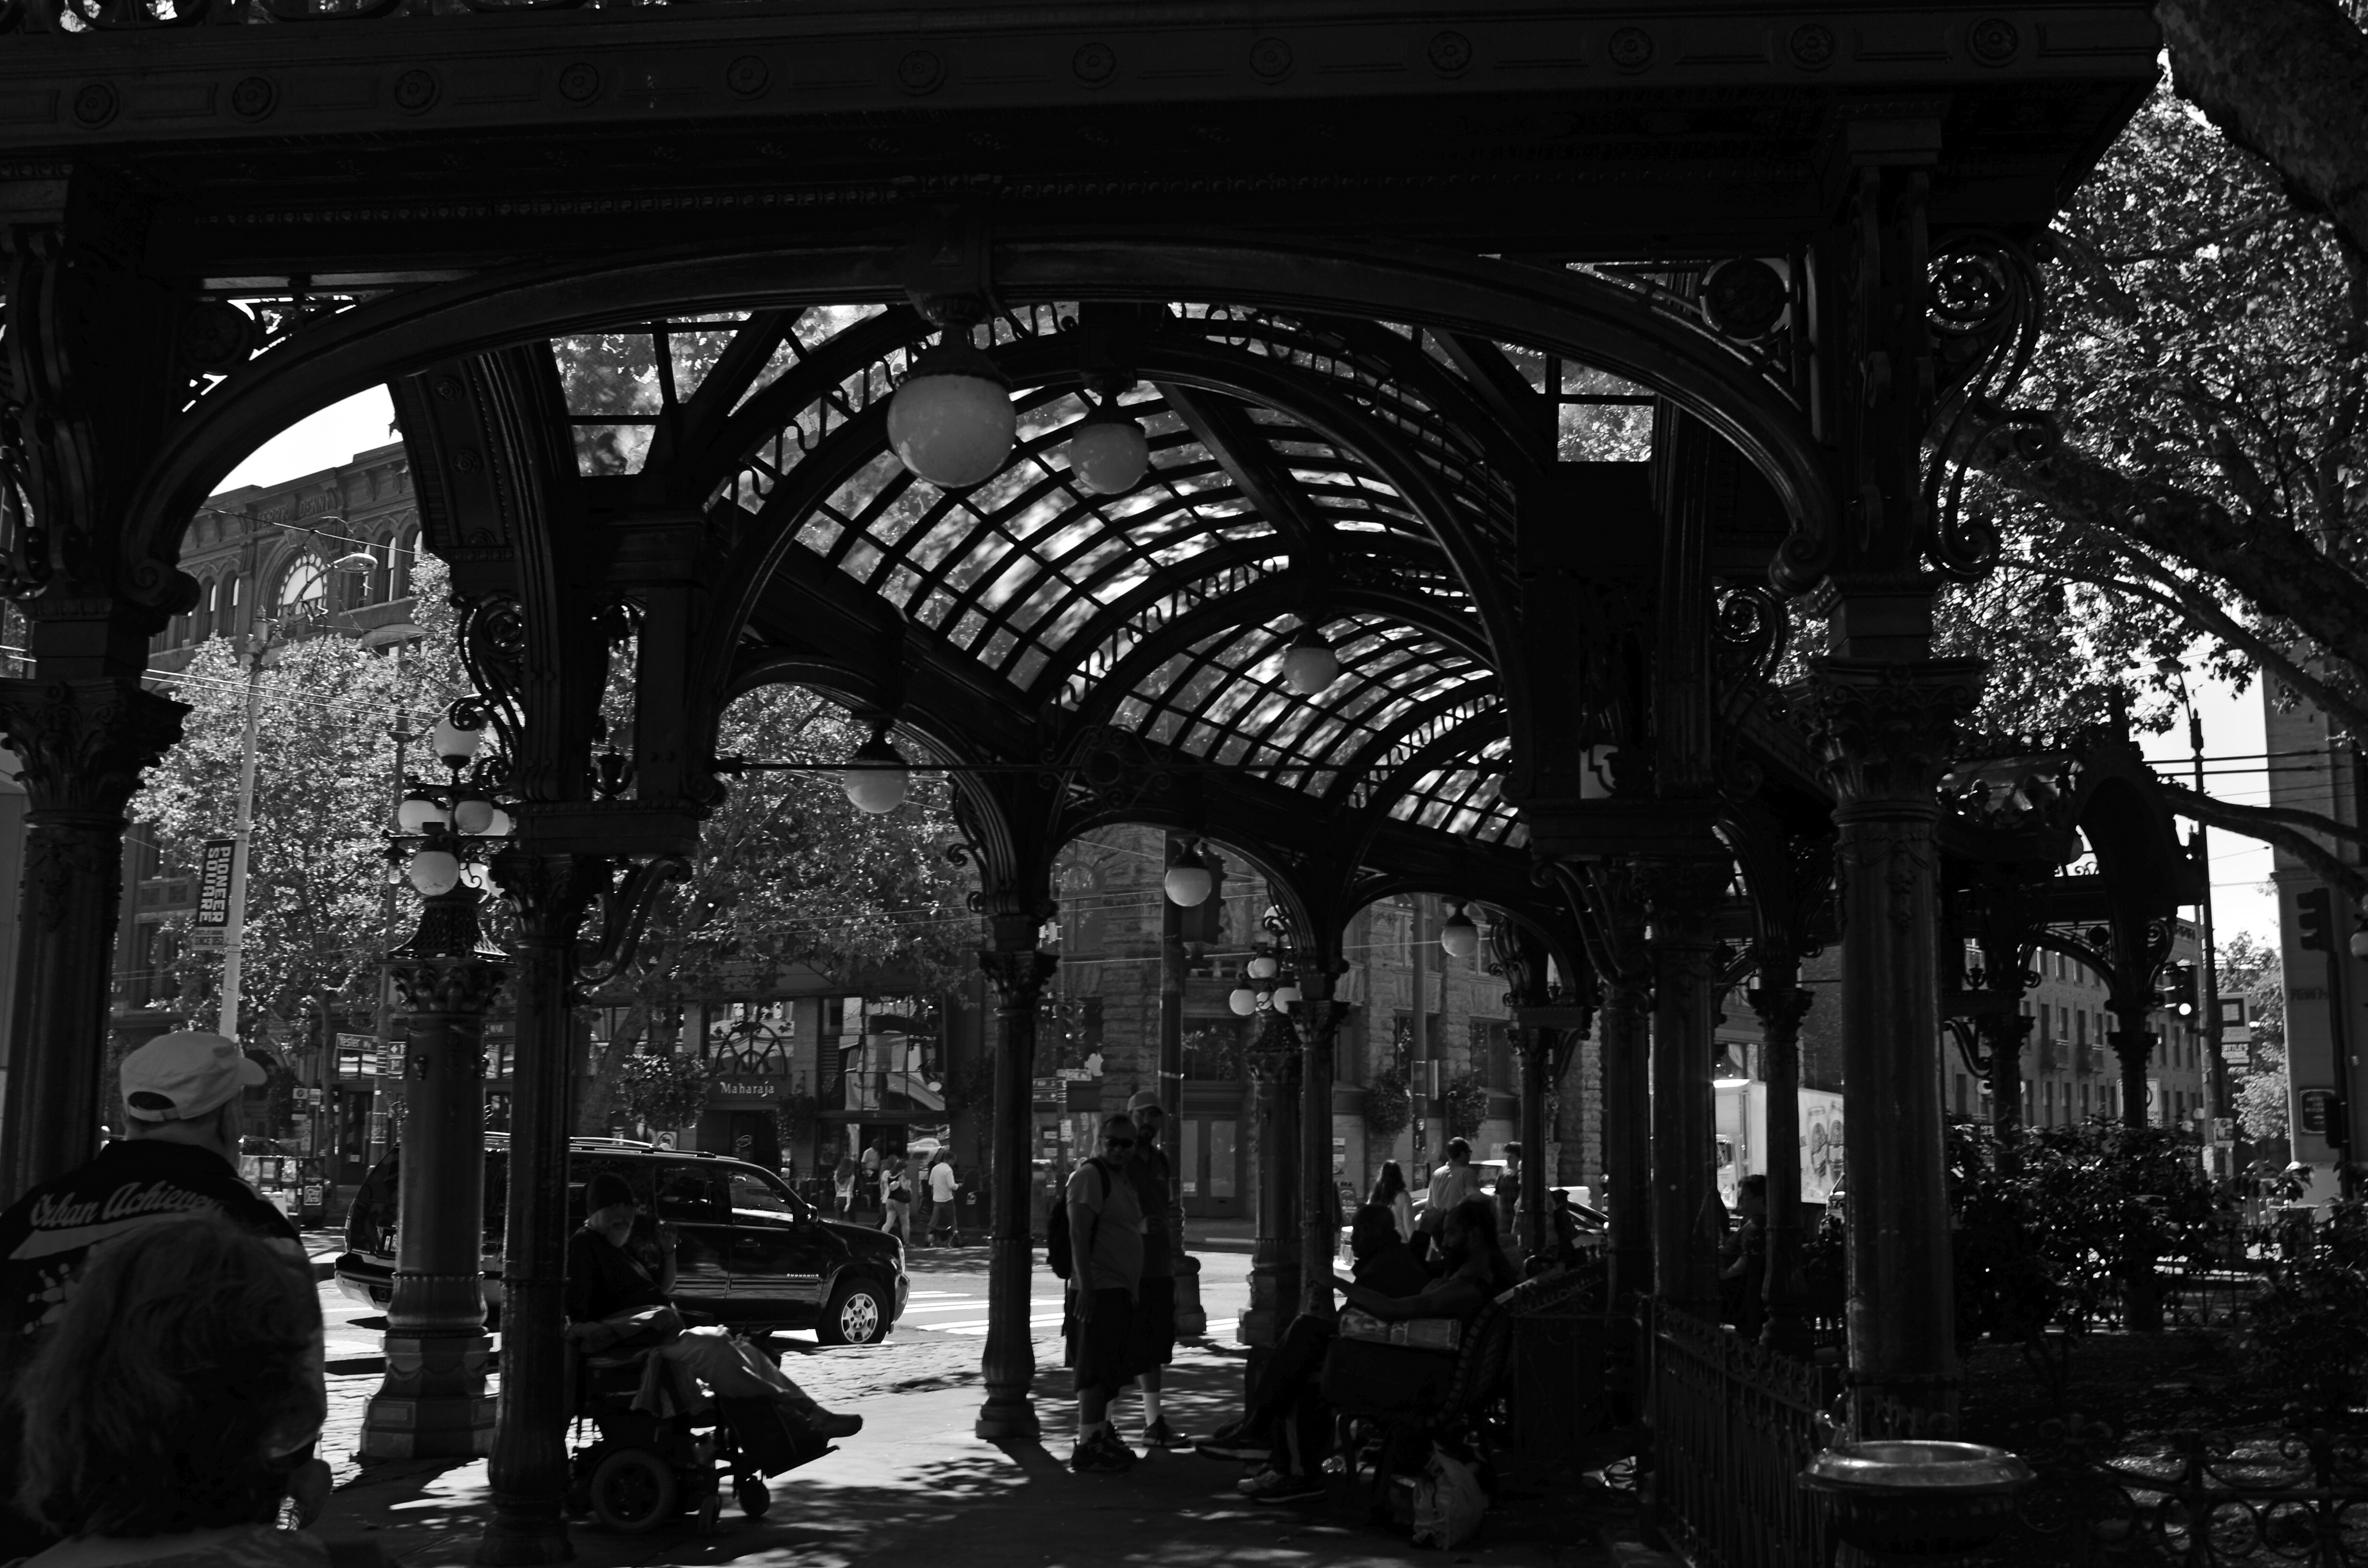 Local characters convene under an aging arch in downtown Seattle.